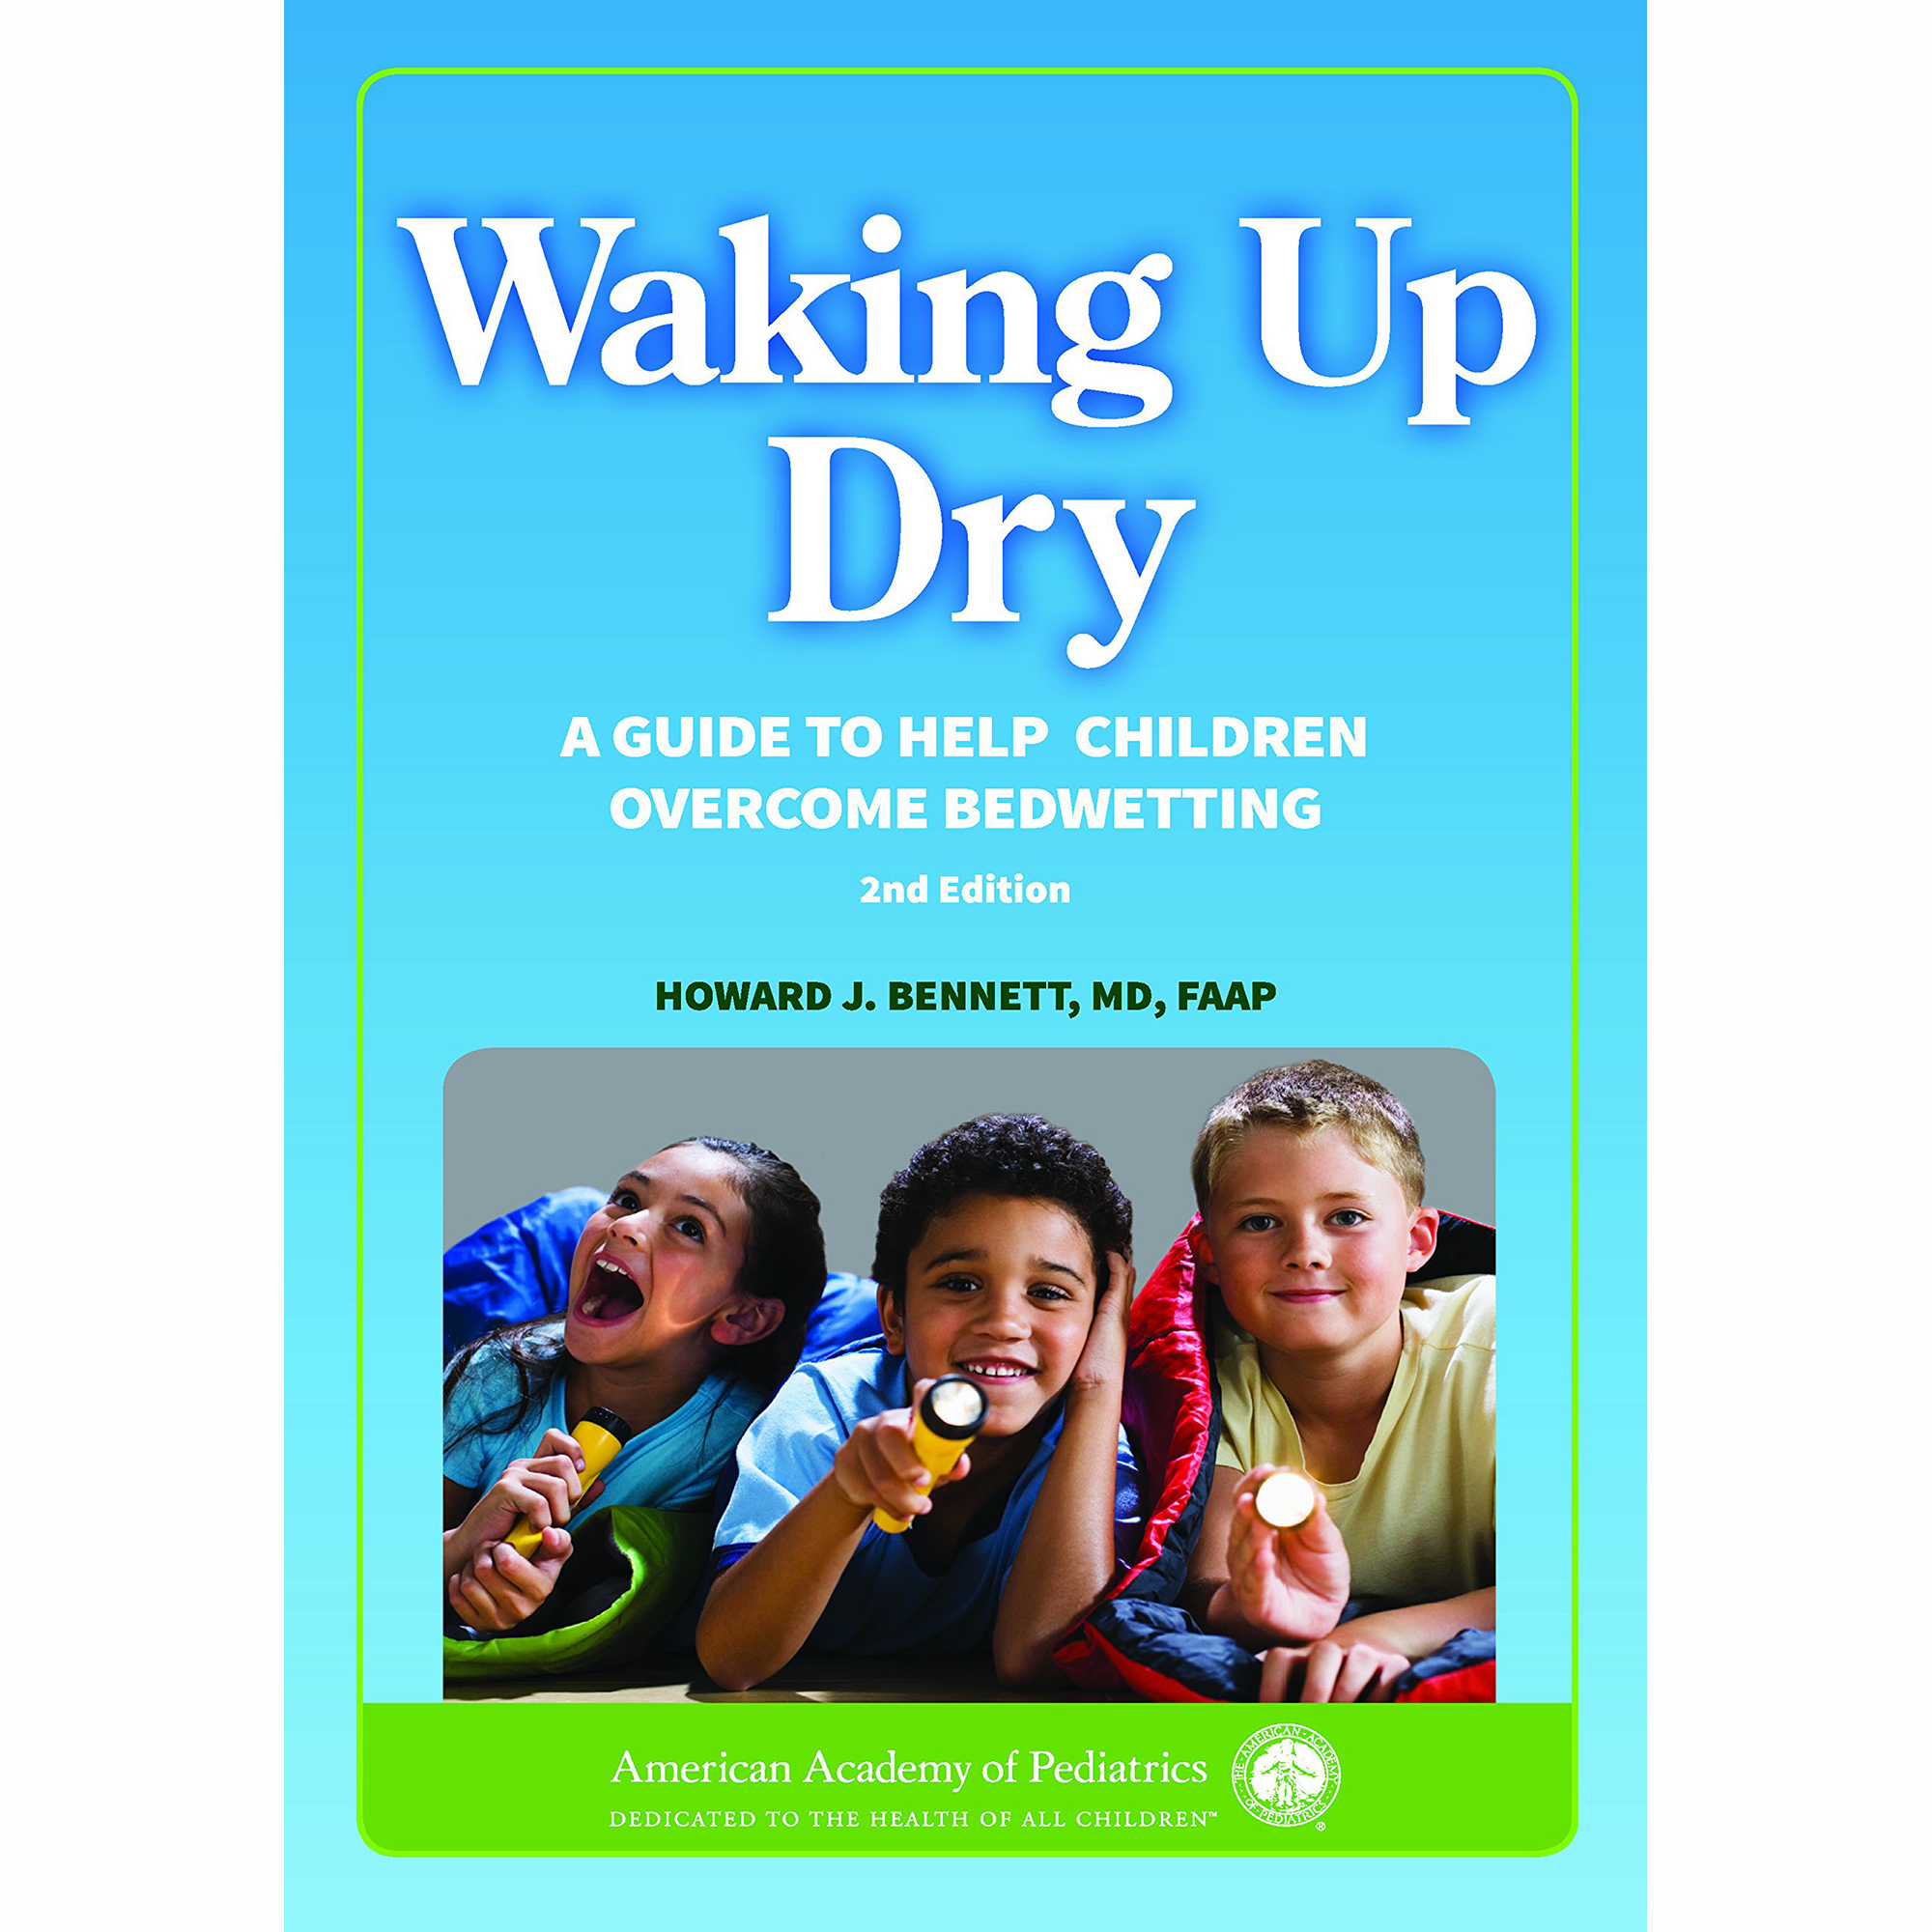 Waking Up Dry: A Guide to Help Children Overcome Bedwetting, Second Edition